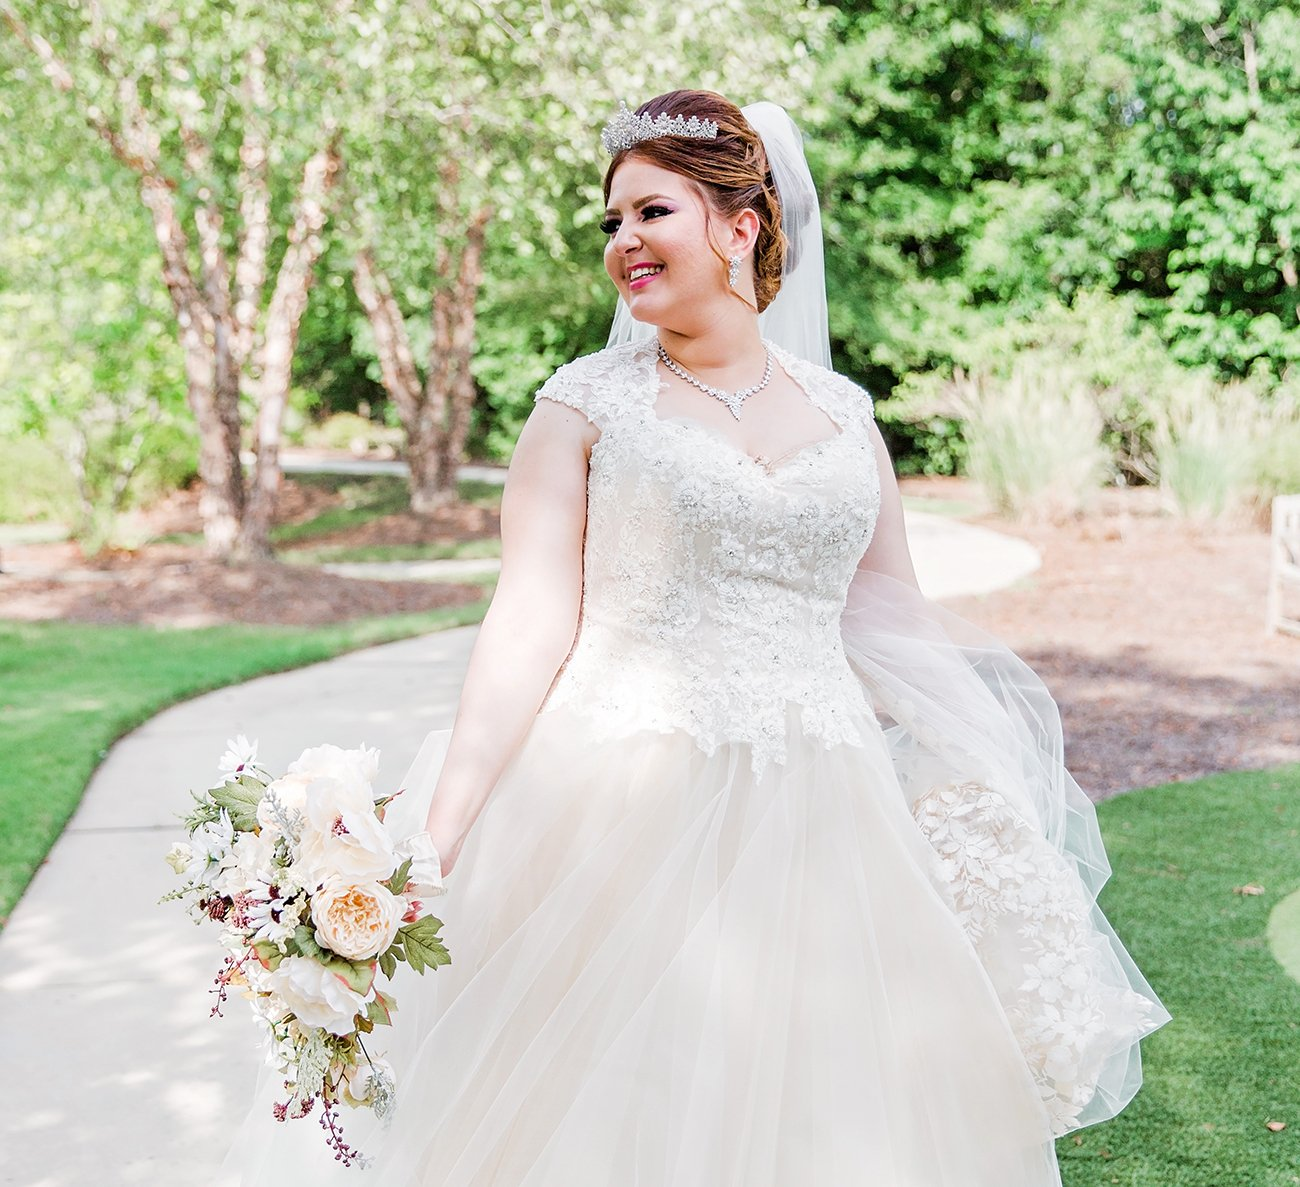 Beautiful Wedding Dress by Raleigh wedding Photographer Leah Marie Photographer + Stationery